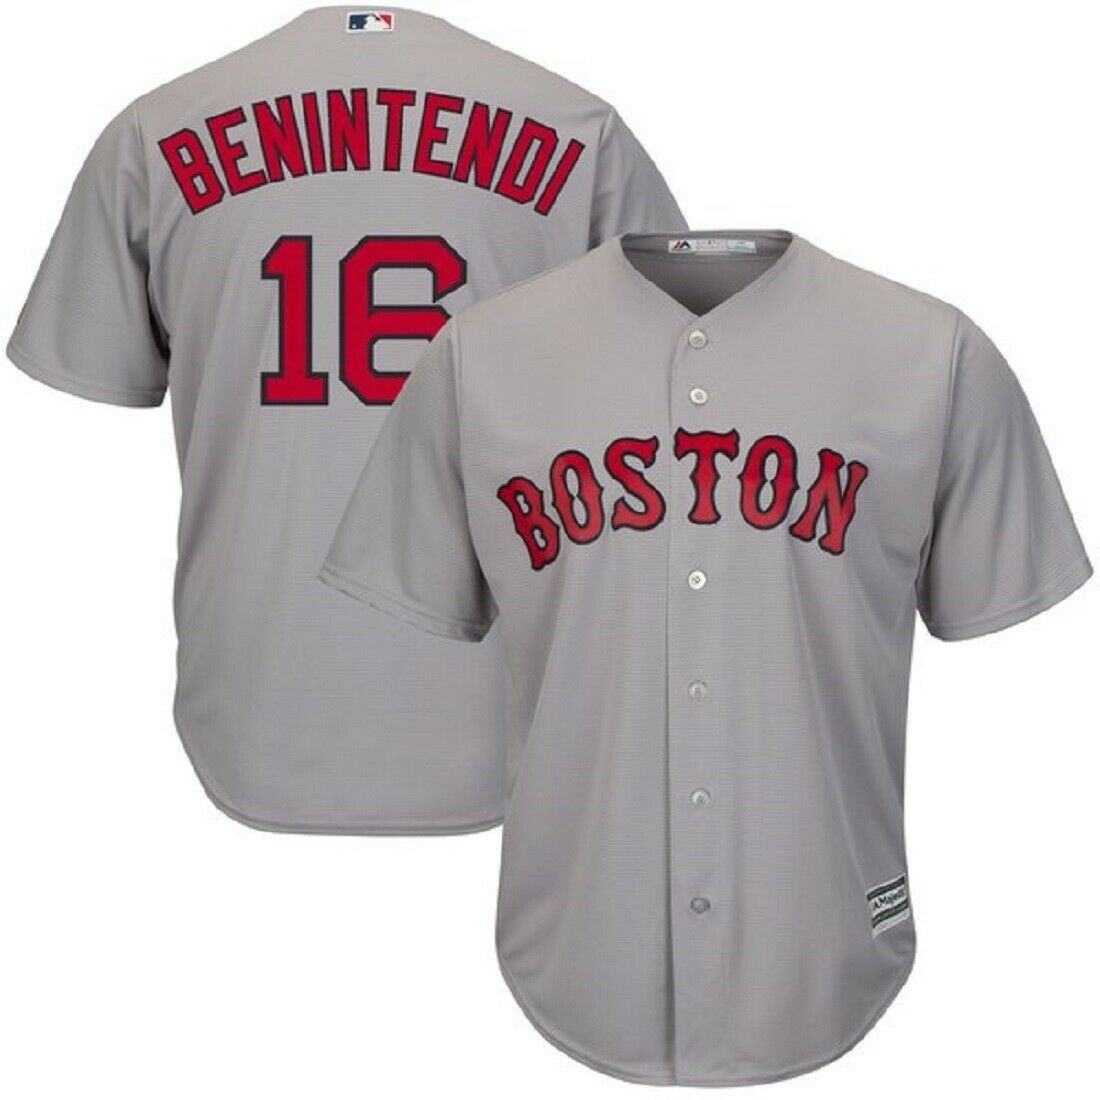 Andrew Benintendi Boston Red Sox Majestic Road Gray Cool Base Jersey Adult XL